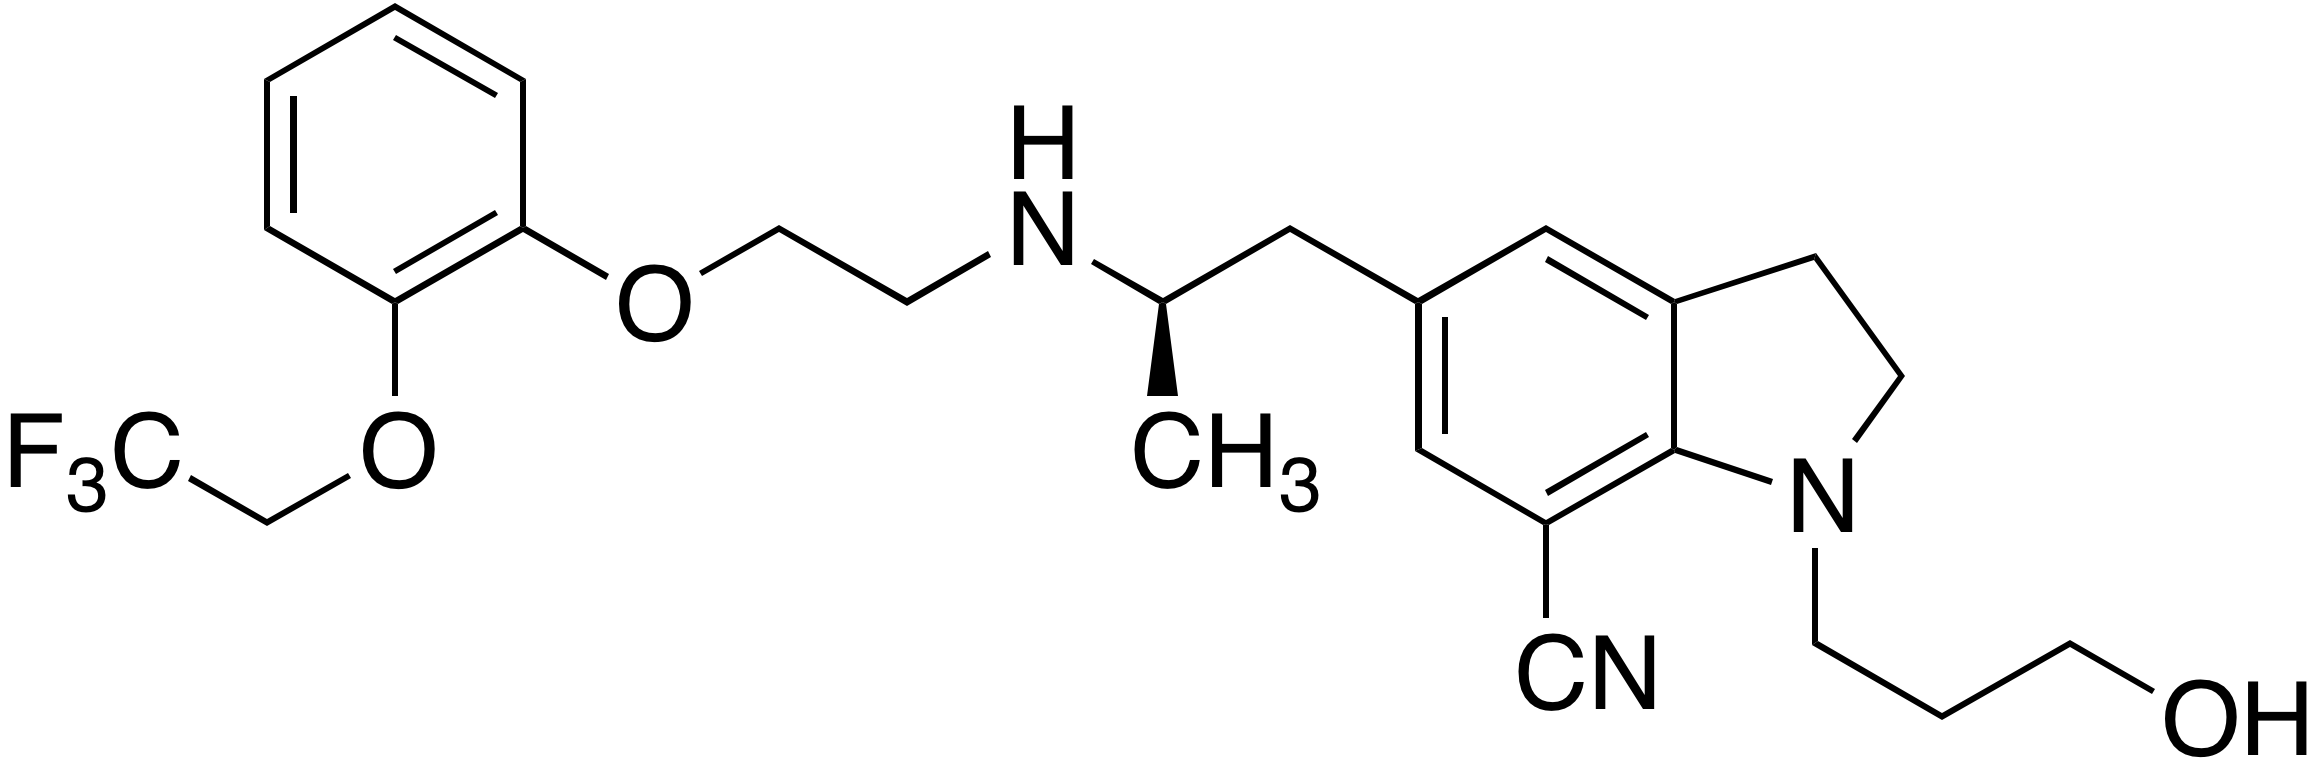 Silodosin impurity B